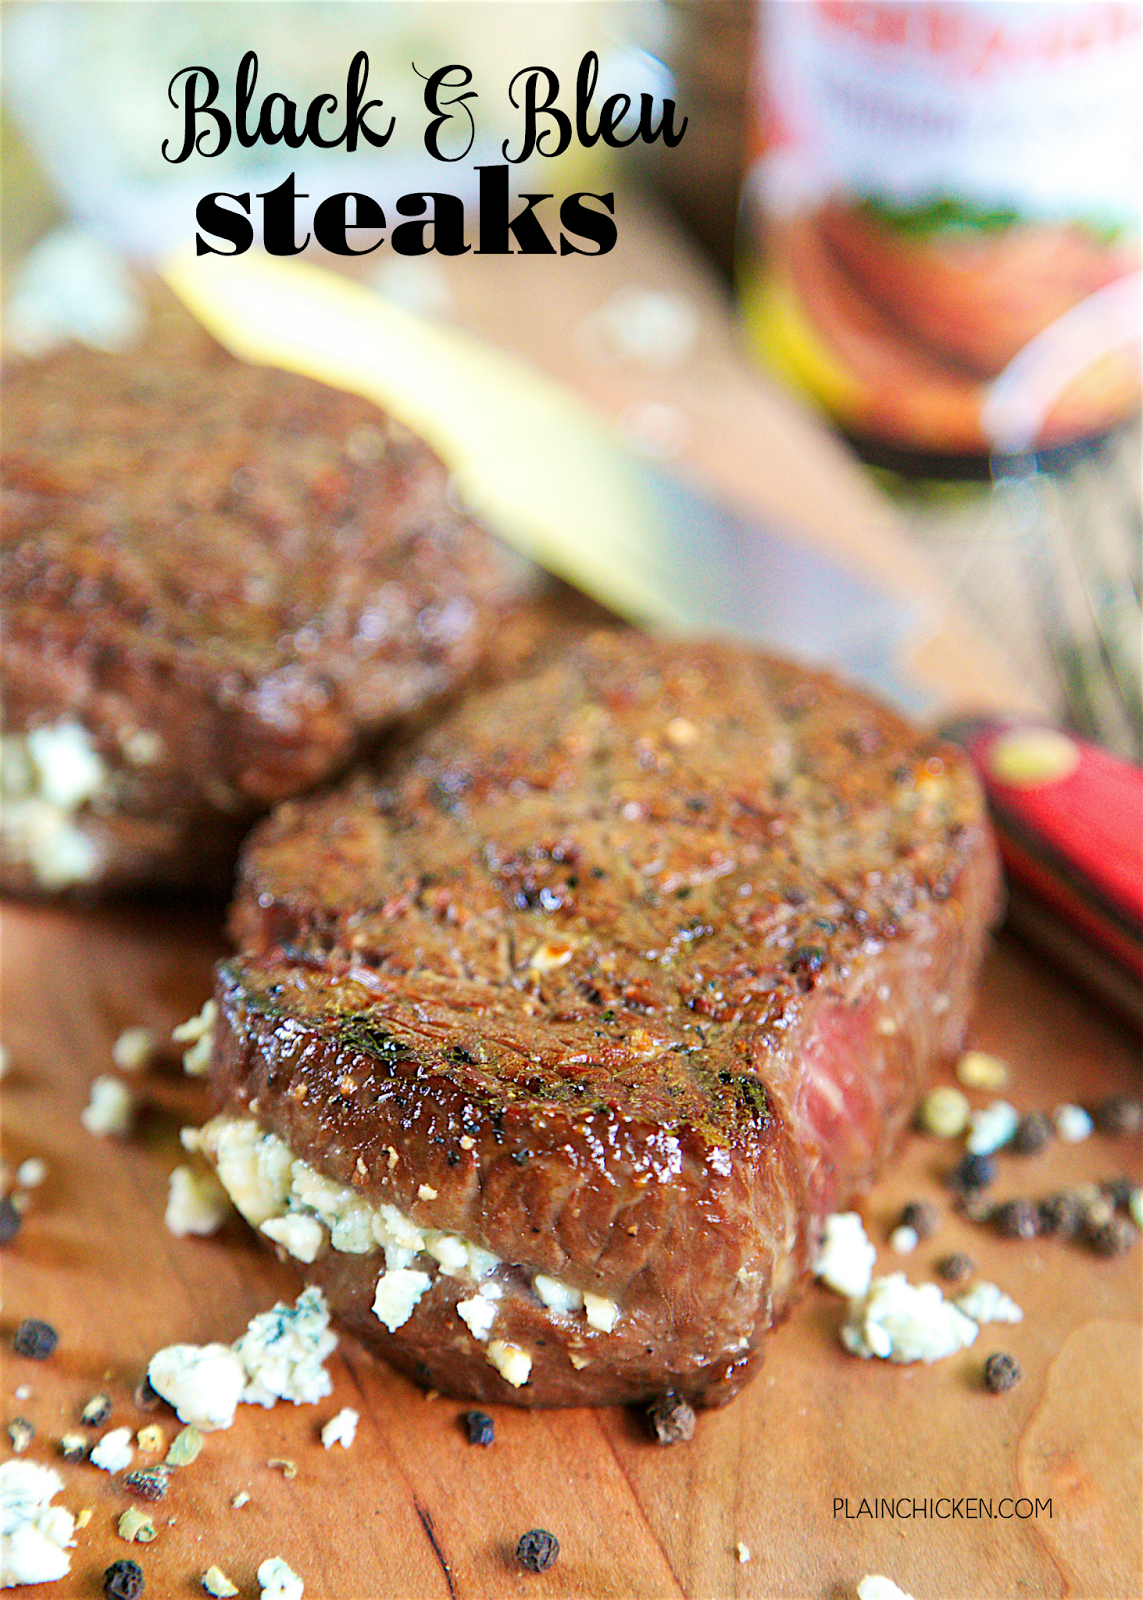 Black and Bleu Steaks - only 4 ingredients to the best steak you've ever eaten! Kikkoman Teriyaki Marinade & Sauce, Worcestershire sauce, black pepper and bleu cheese. Let the steaks marinate all day. Made these for a dinner party and everyone cleaned their plate. CRAZY good! Better than any steakhouse!